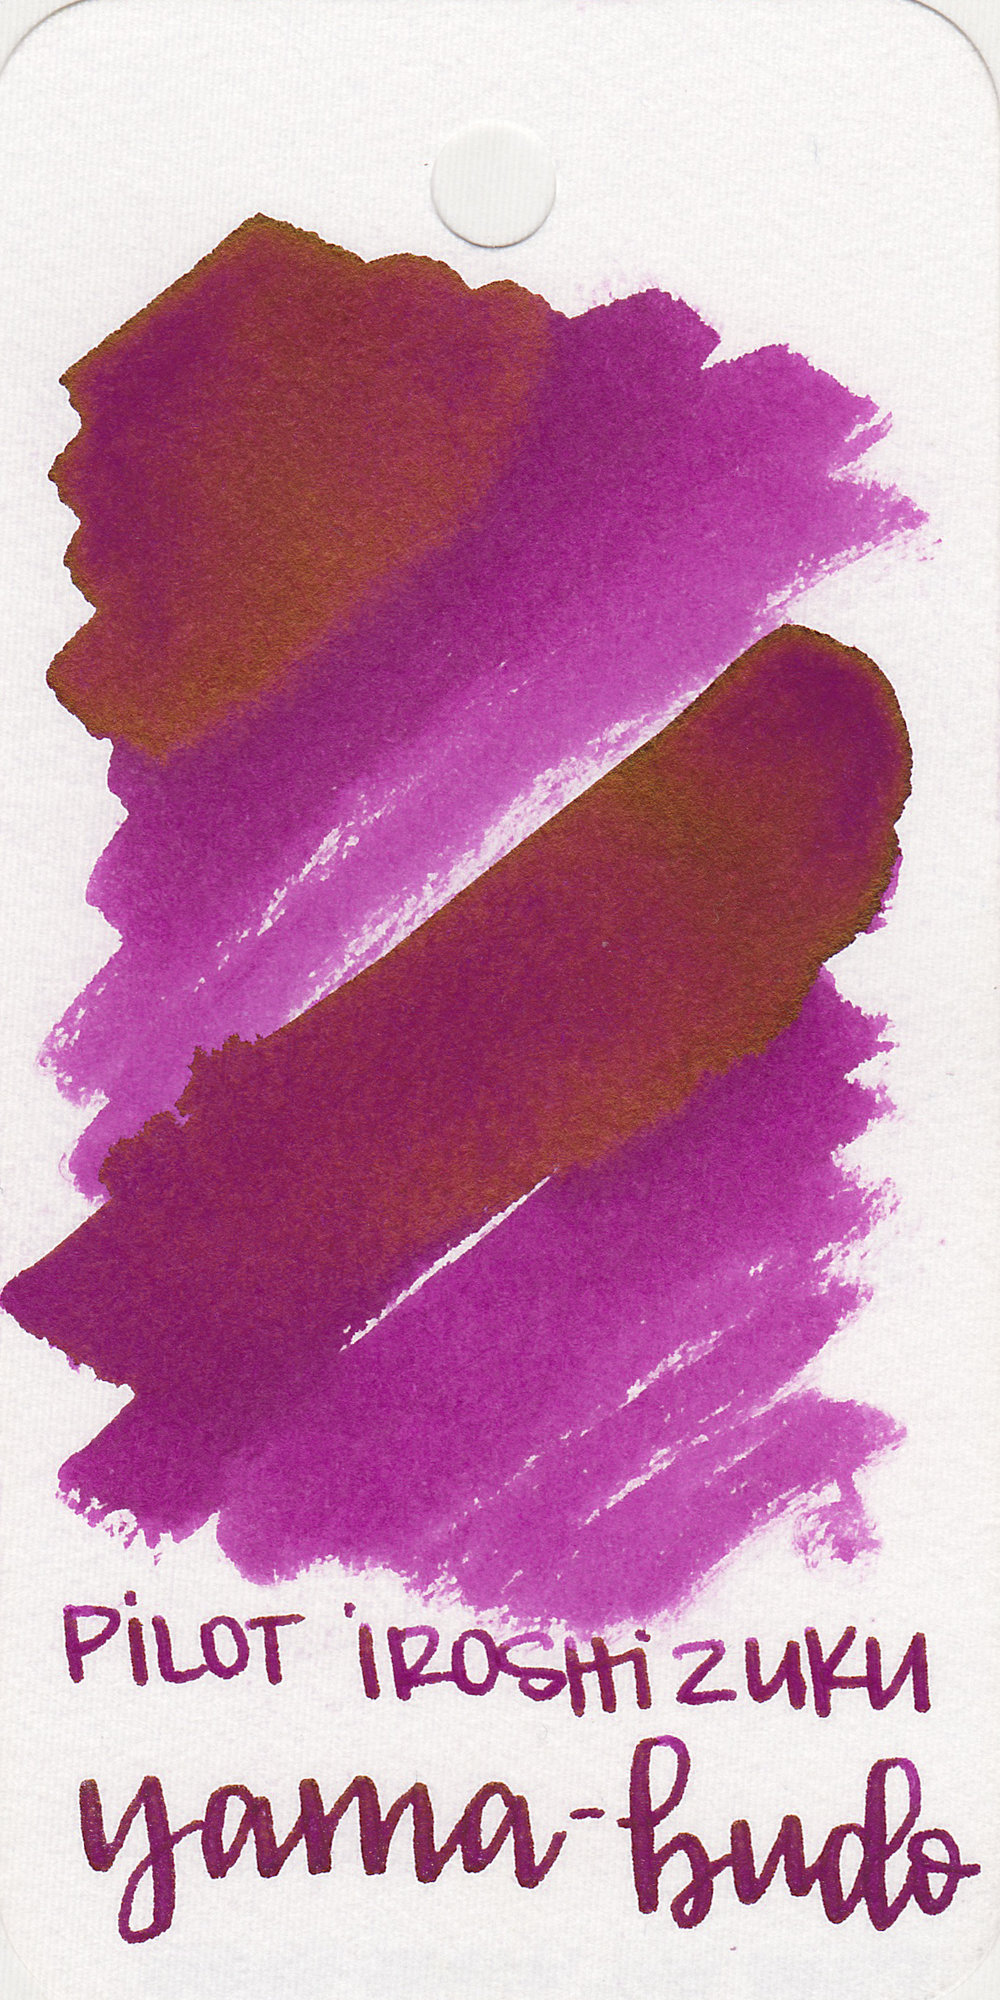 The color: - Yama-budo is a bright, fuchsia purple.